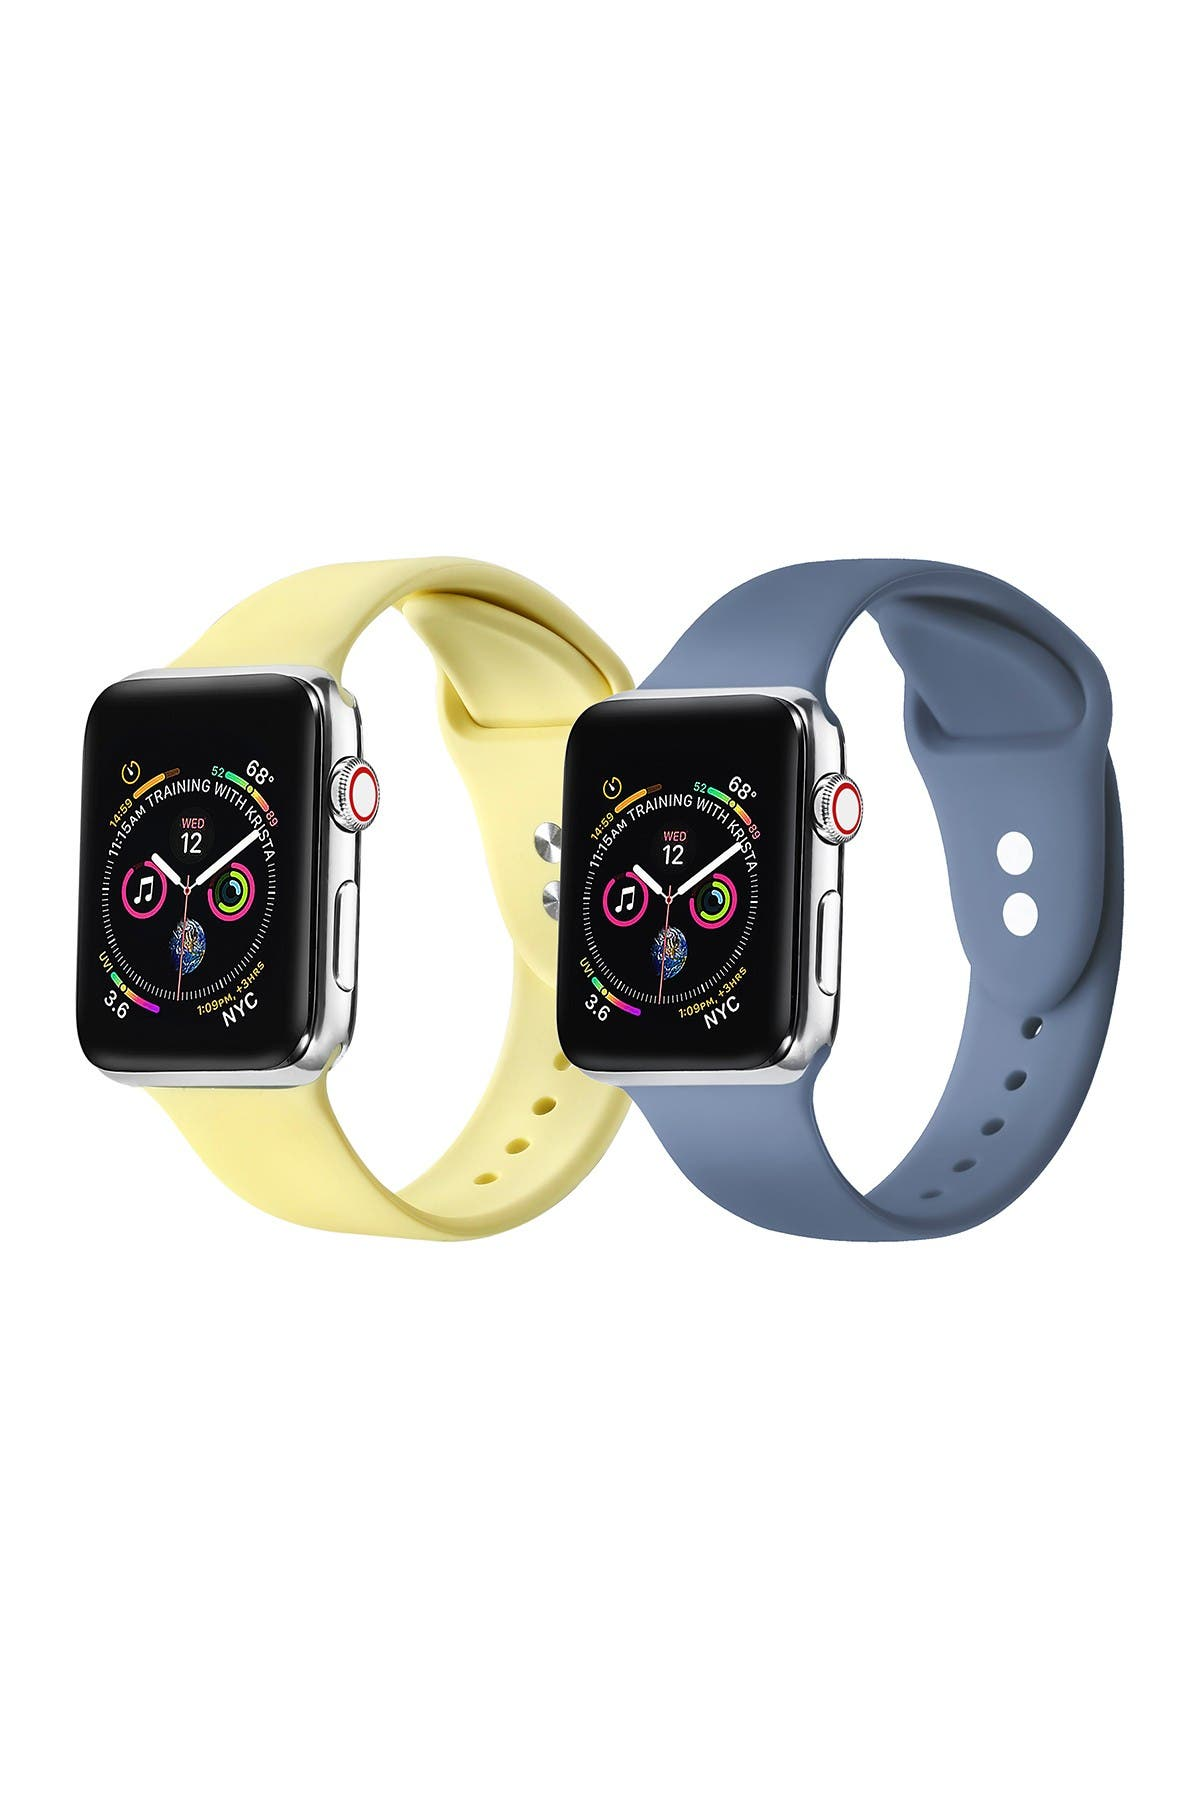 Image of POSH TECH Yellow/Atlantic Blue Apple Watch Replacement Band - Set of 2 - 42mm/44mm